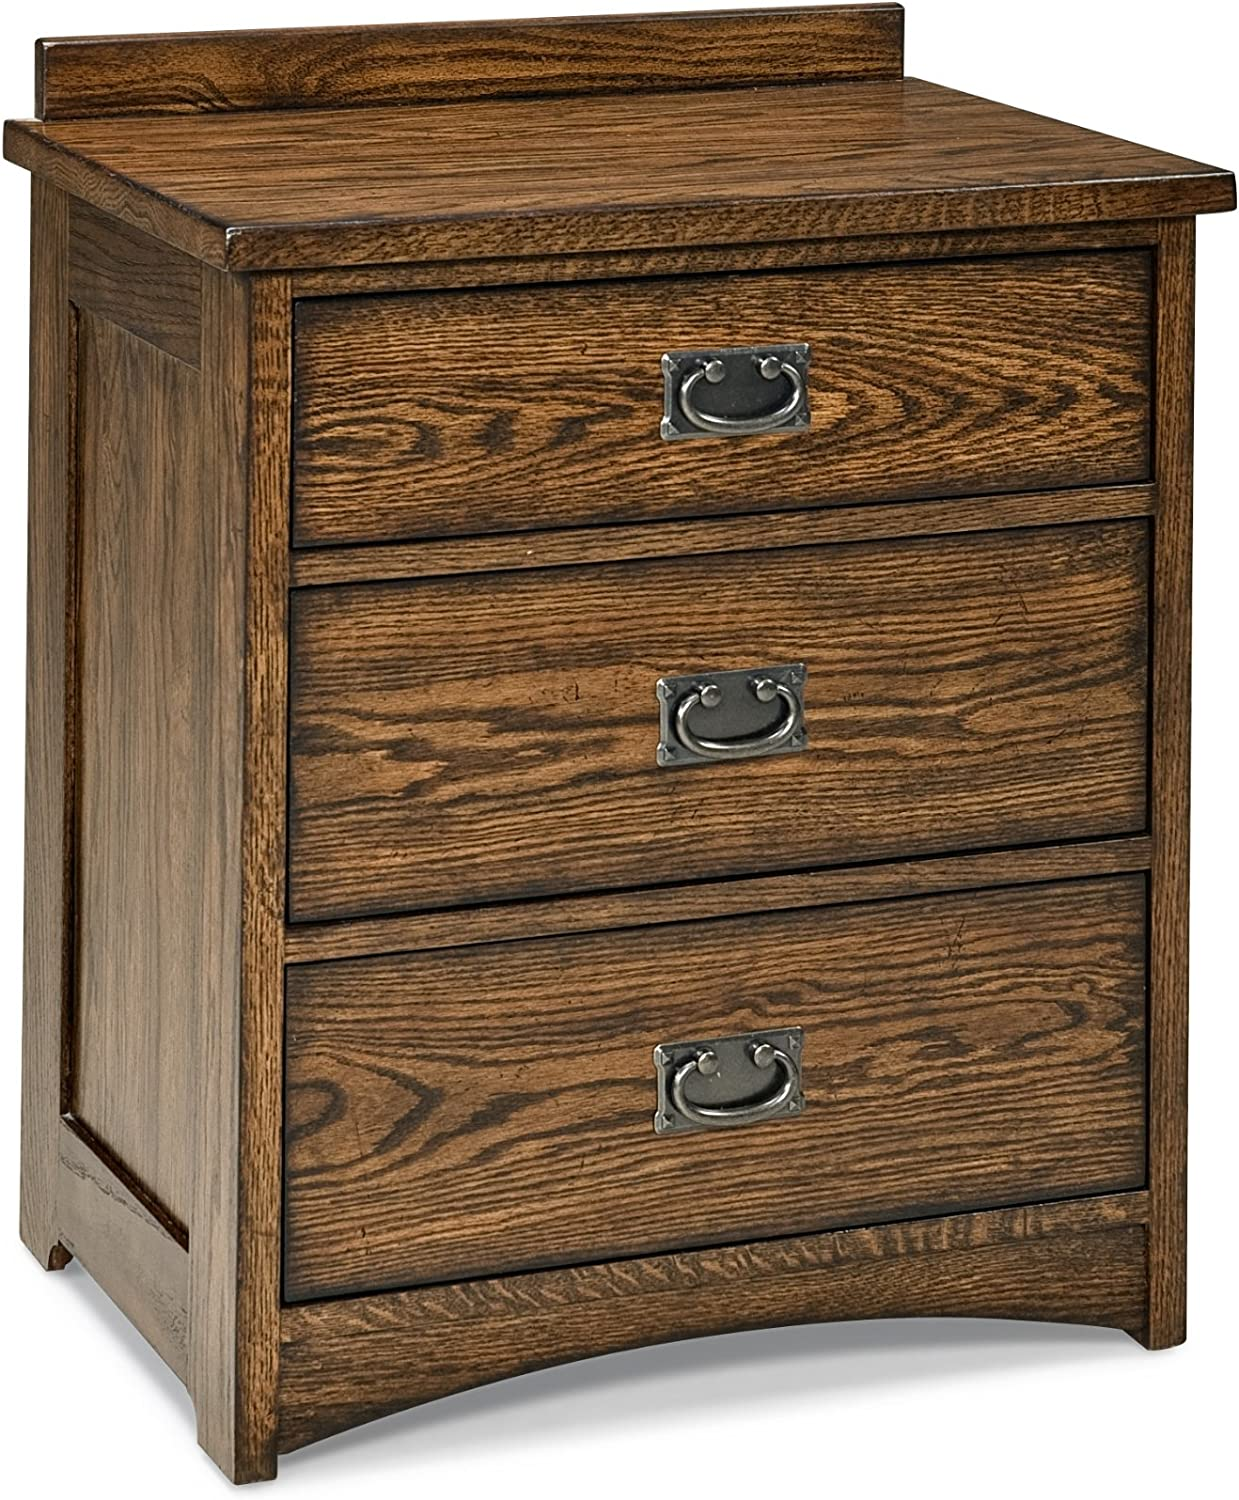 Imagio Home 3-Drawer Oakhurst Nightstand in Mission Finish